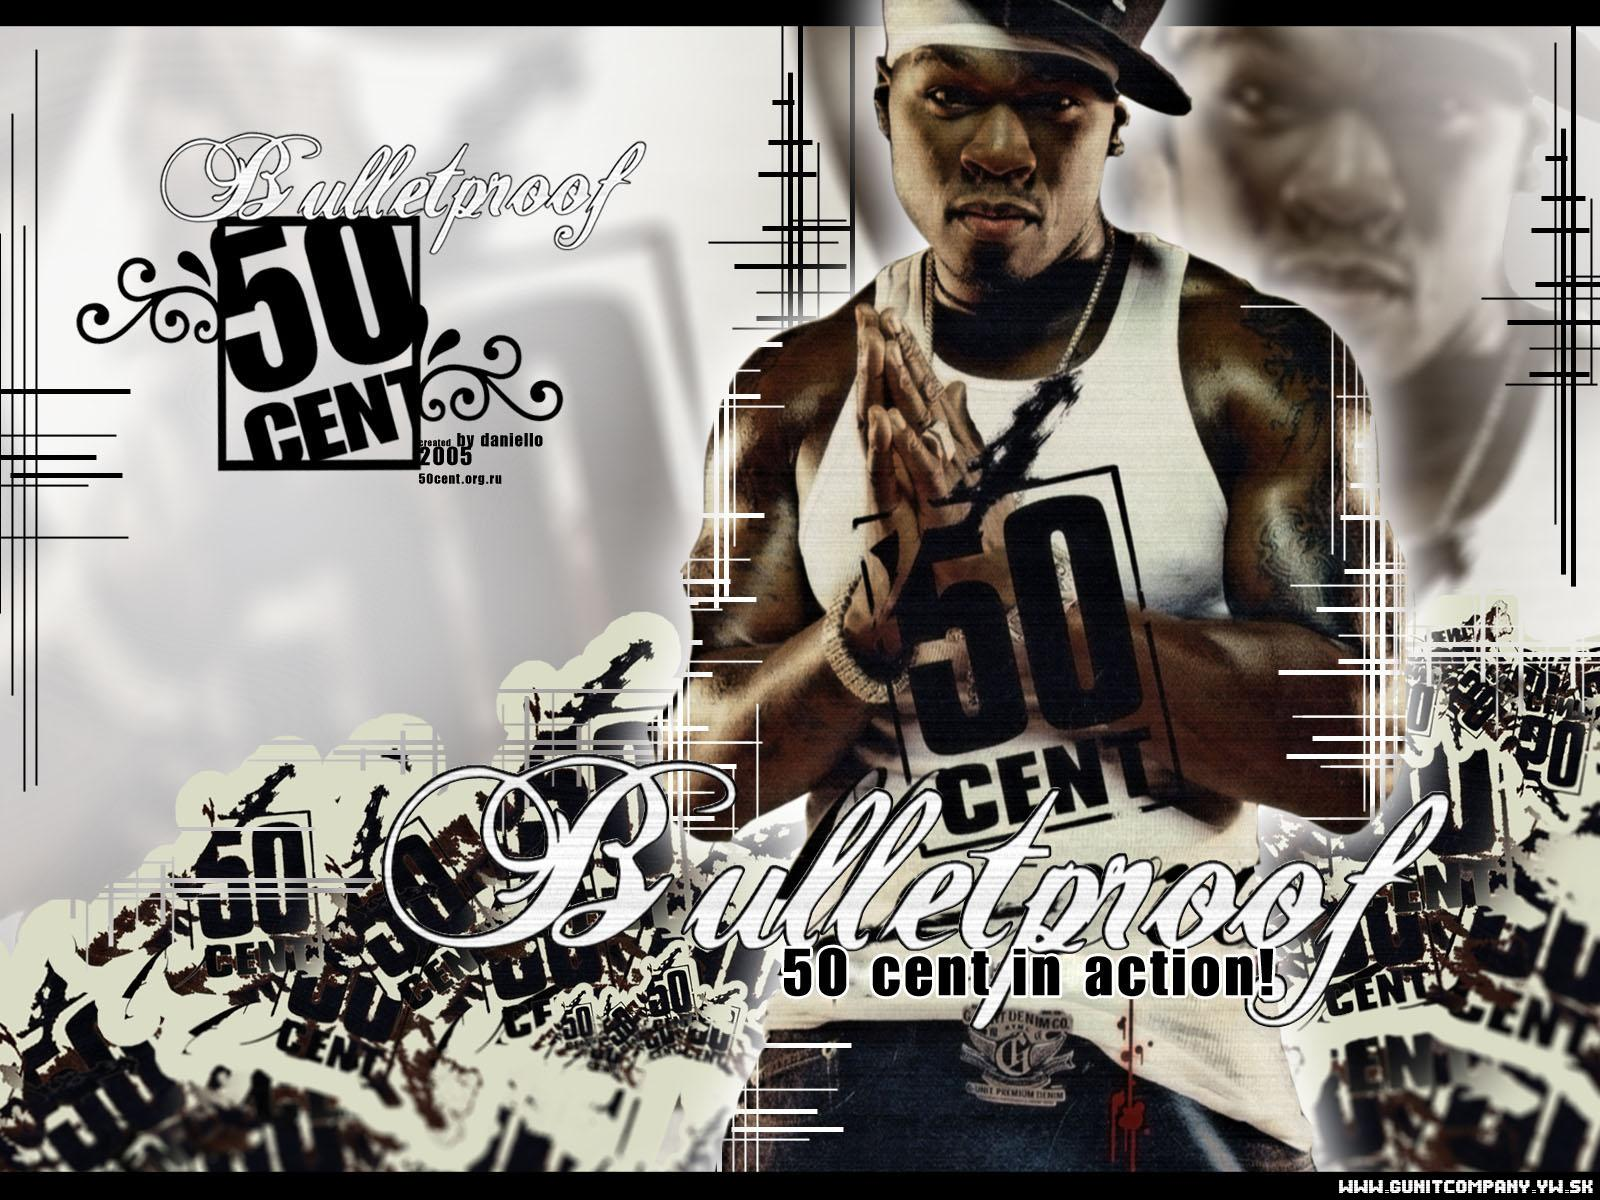 50 CENT gangsta rap rapper hip hop unit cent g wallpaper 1600x1200 1600x1200